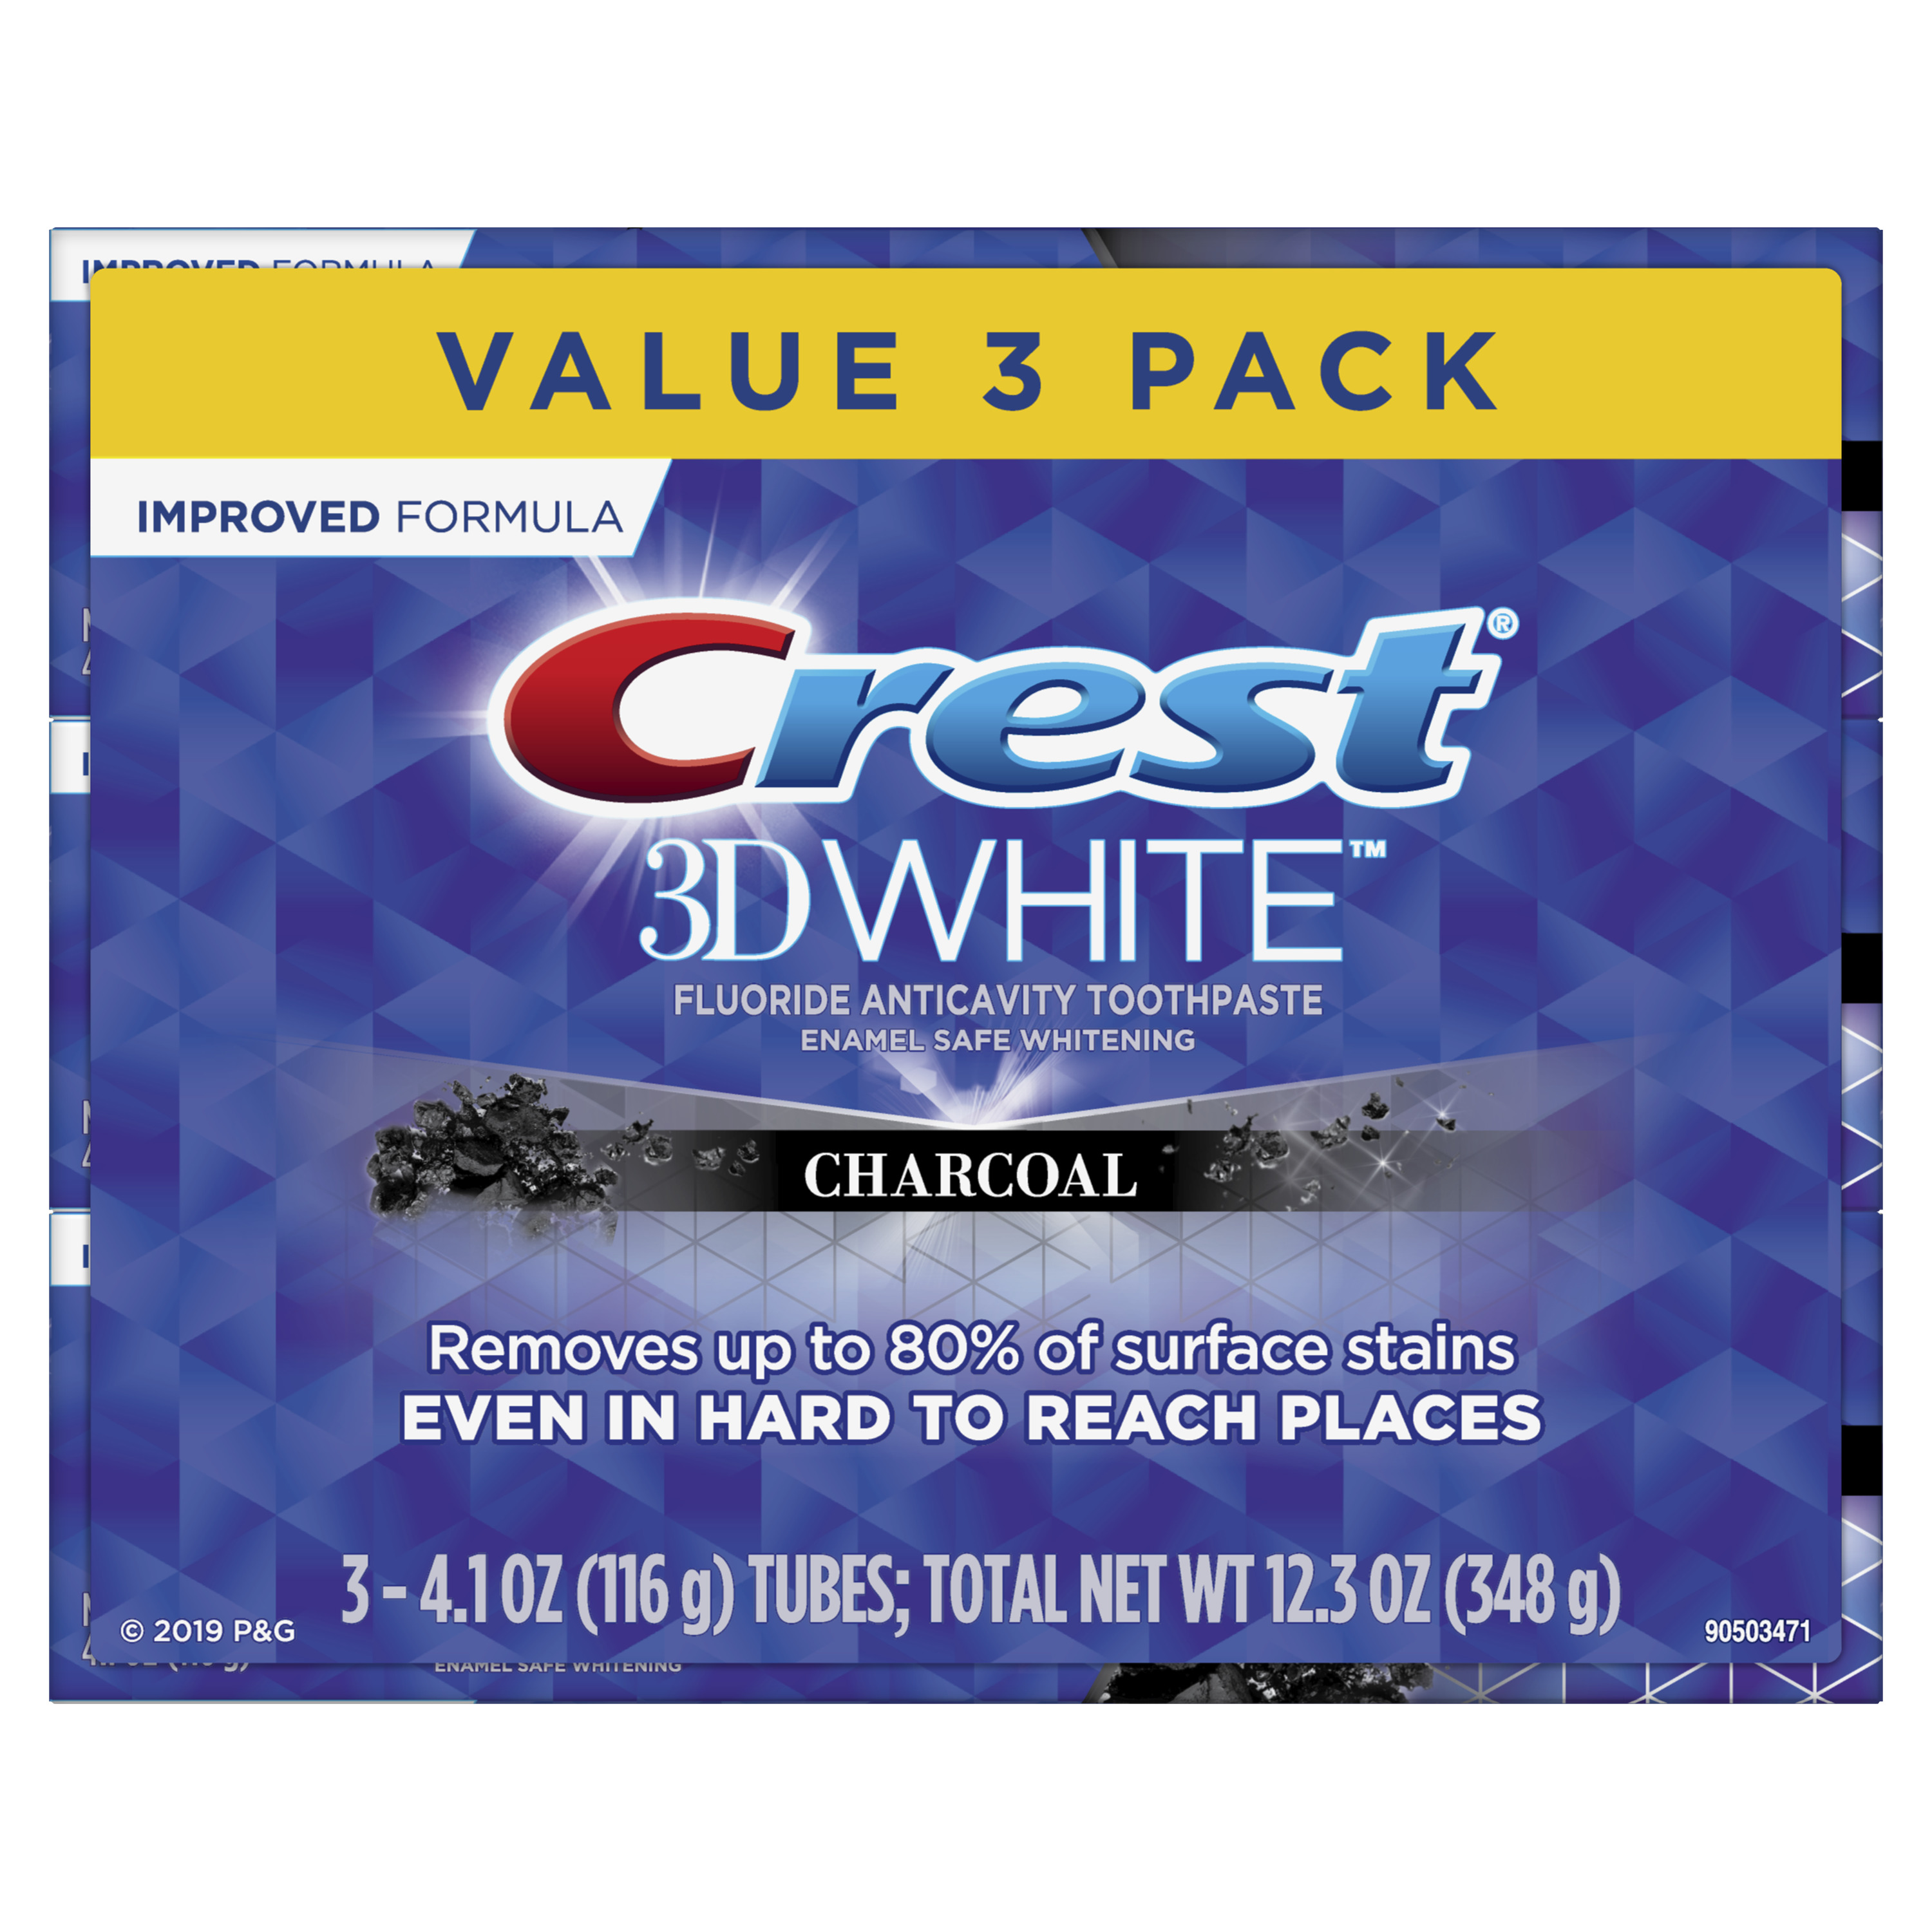 Crest 3D White, Charcoal Whitening Toothpaste, 4.1 Oz